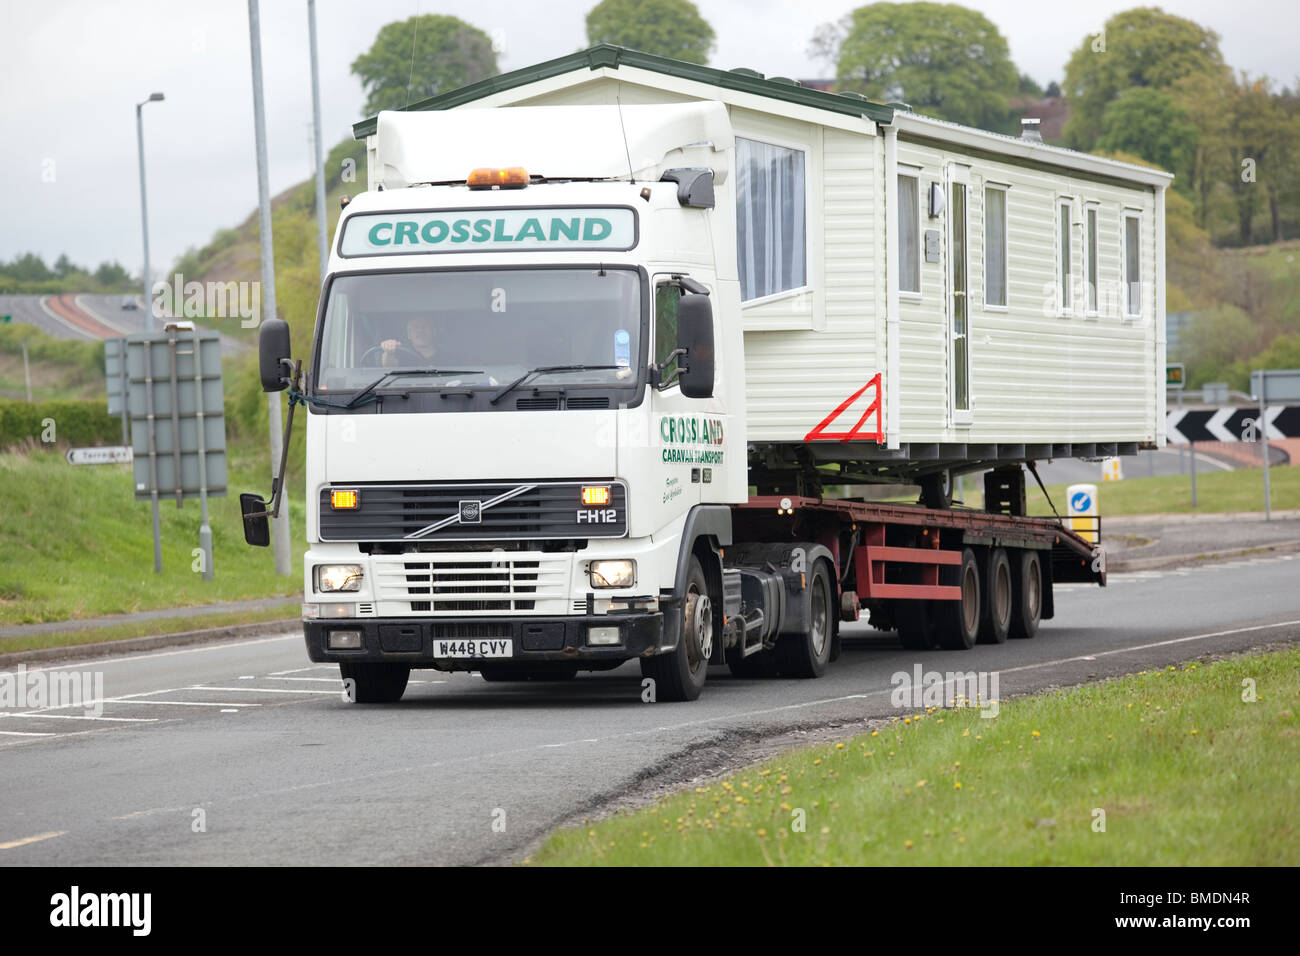 Traffic on the A75 wide or abnormal load static caravan on the back of a articulated lorry Scotland UK - Stock Image